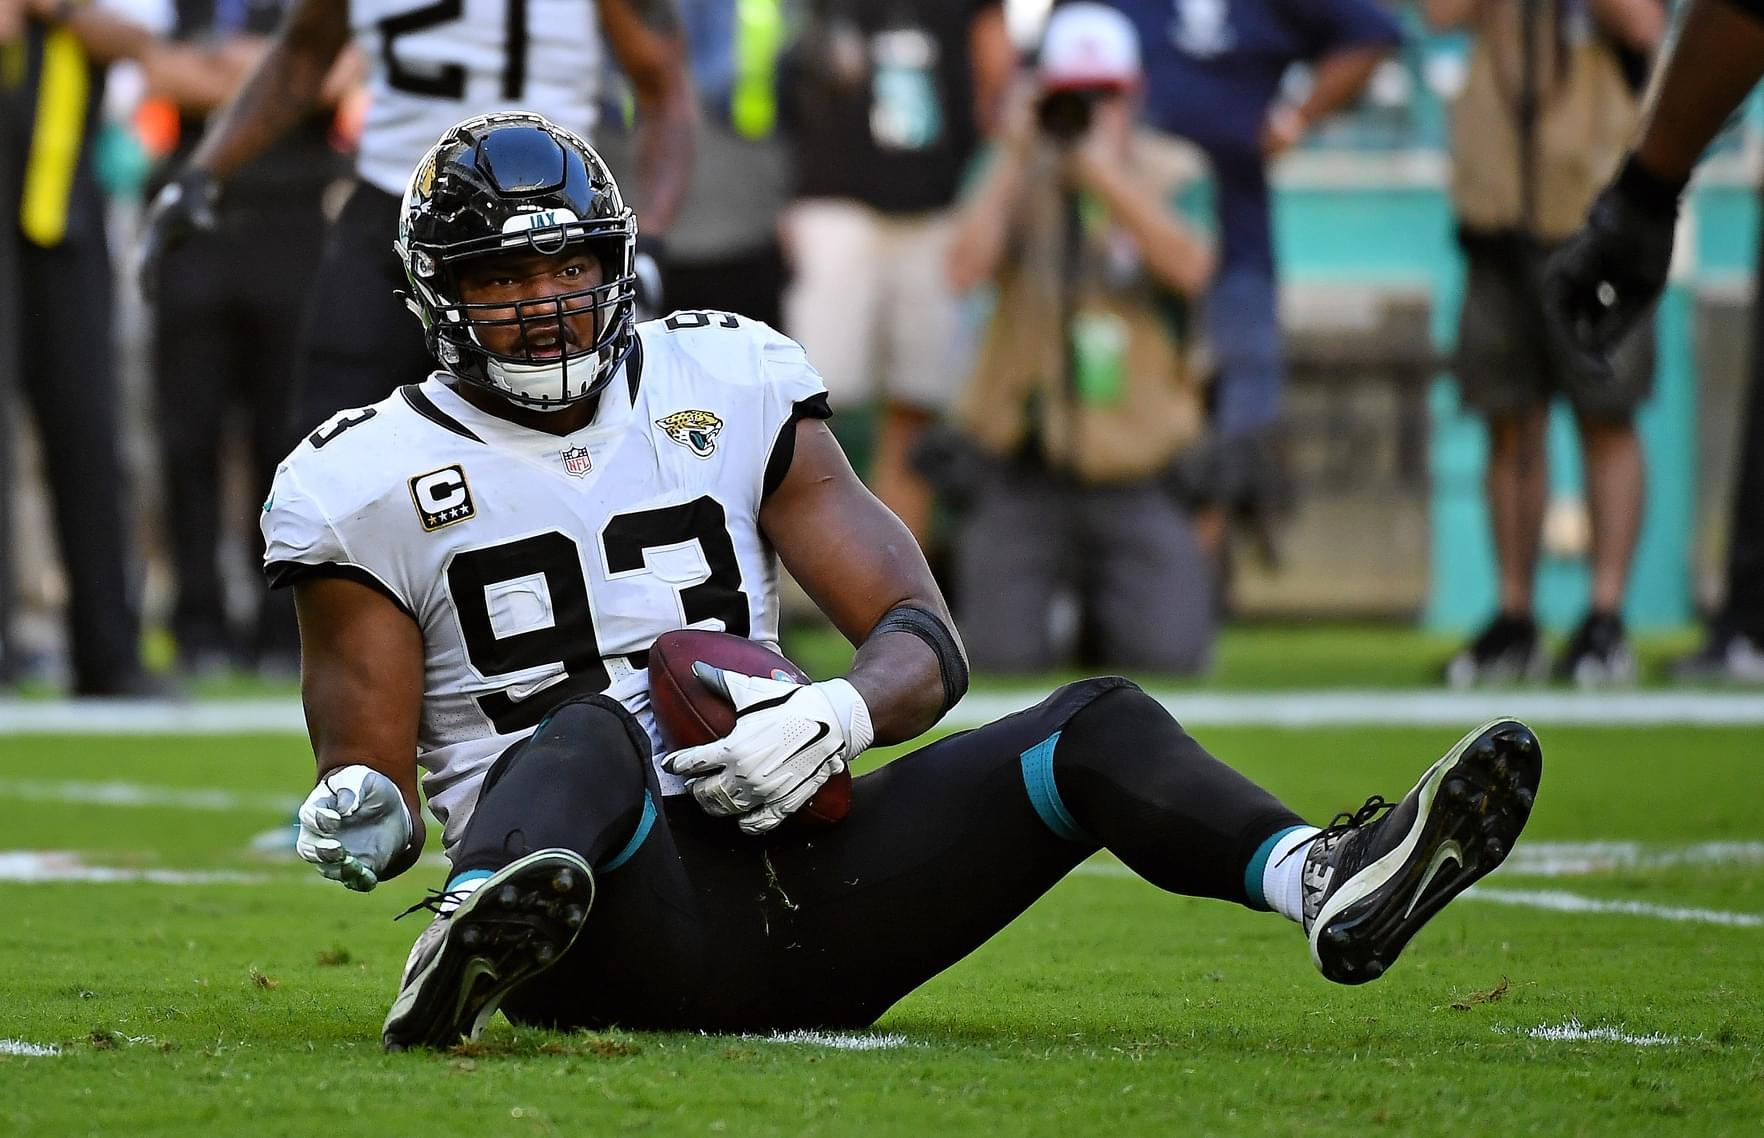 Examining Jaguars salary cap situation now and into future